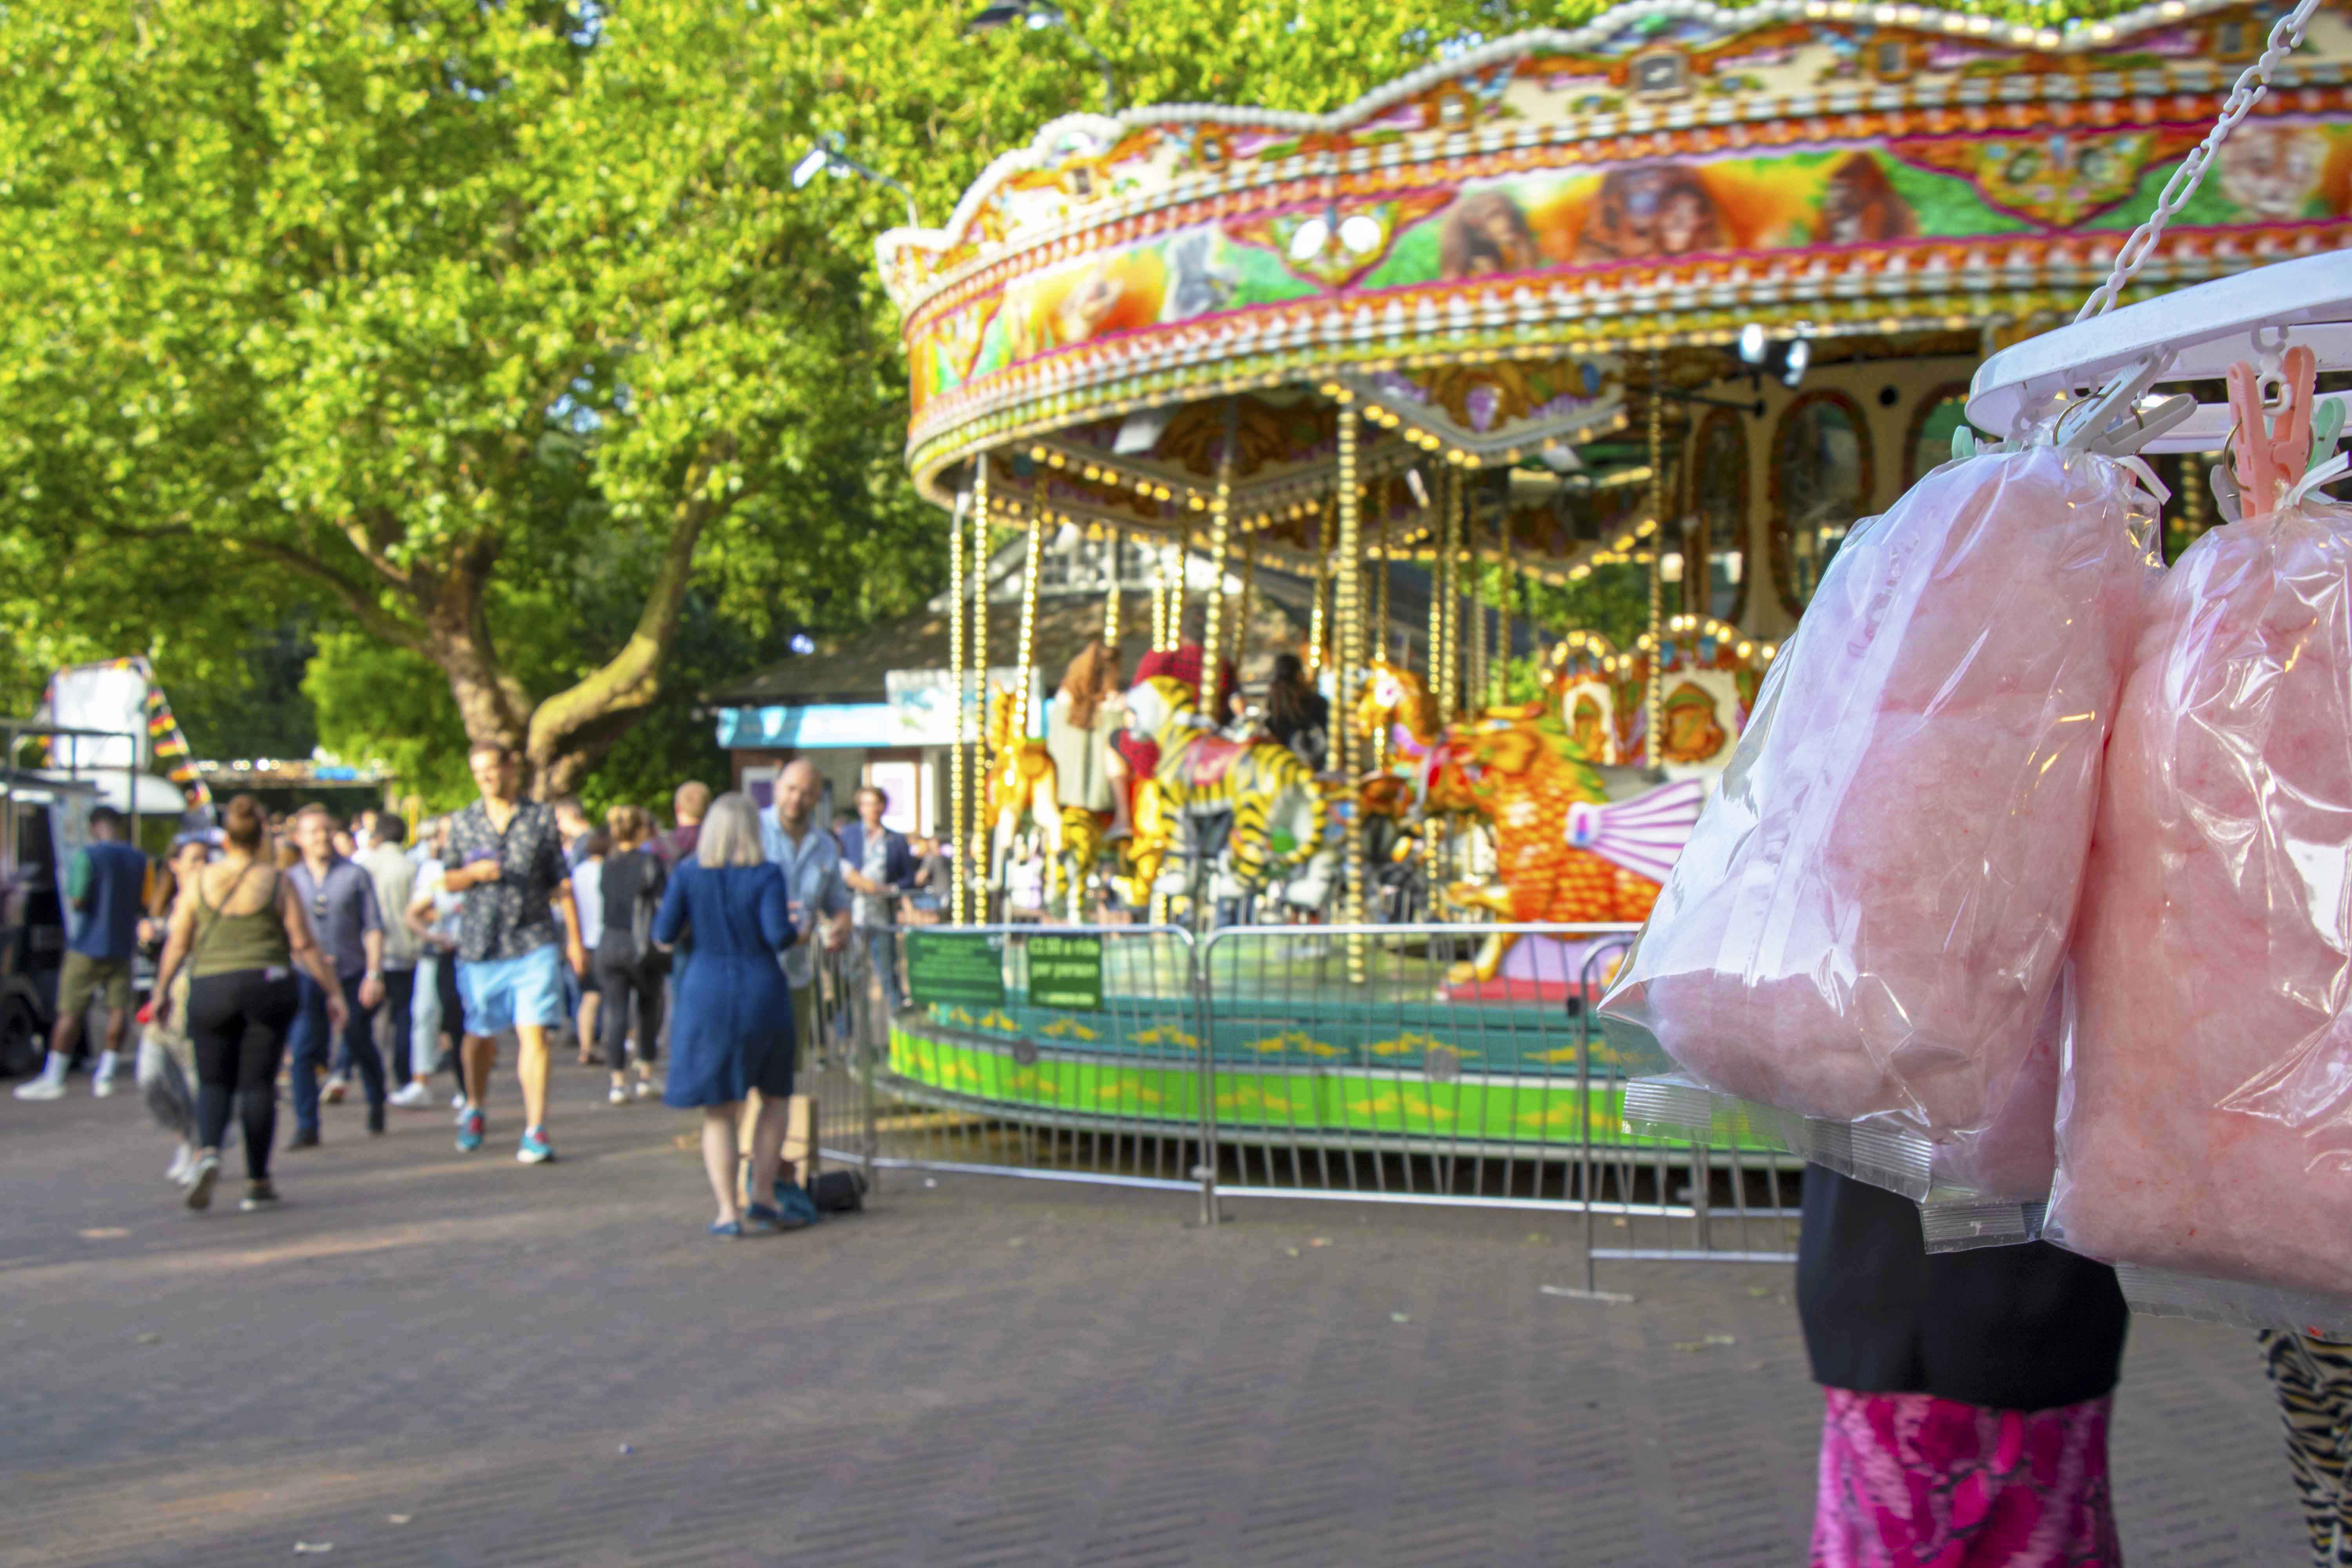 Candy floss and carousel at London Zoo